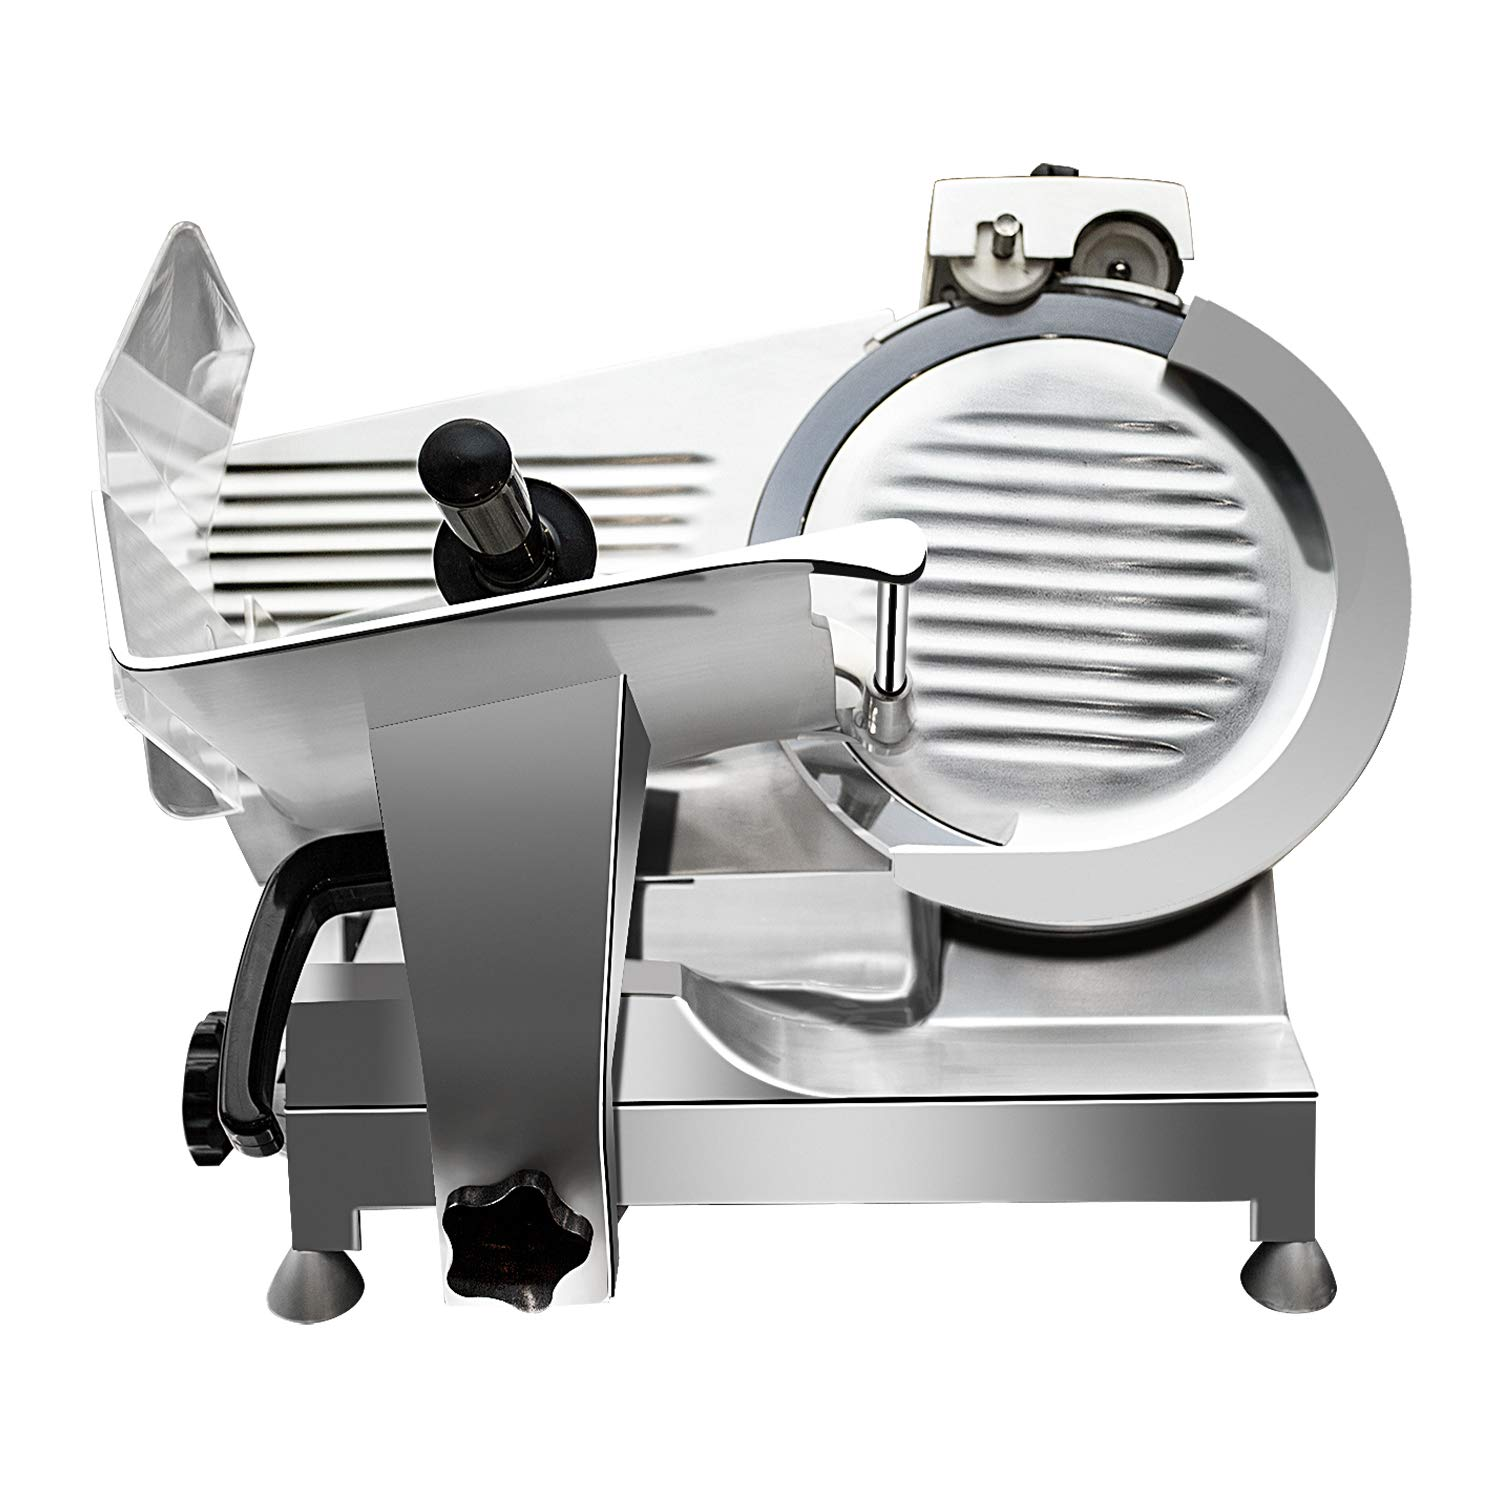 Premium Commercial Semi-Auto Meat Slicer - KITMA Stainless Steel Electric Cheese Deli Food Slicer with 12'' Blade, Adjustable Thickness Control for Restaurant, Kitchen by KITMA